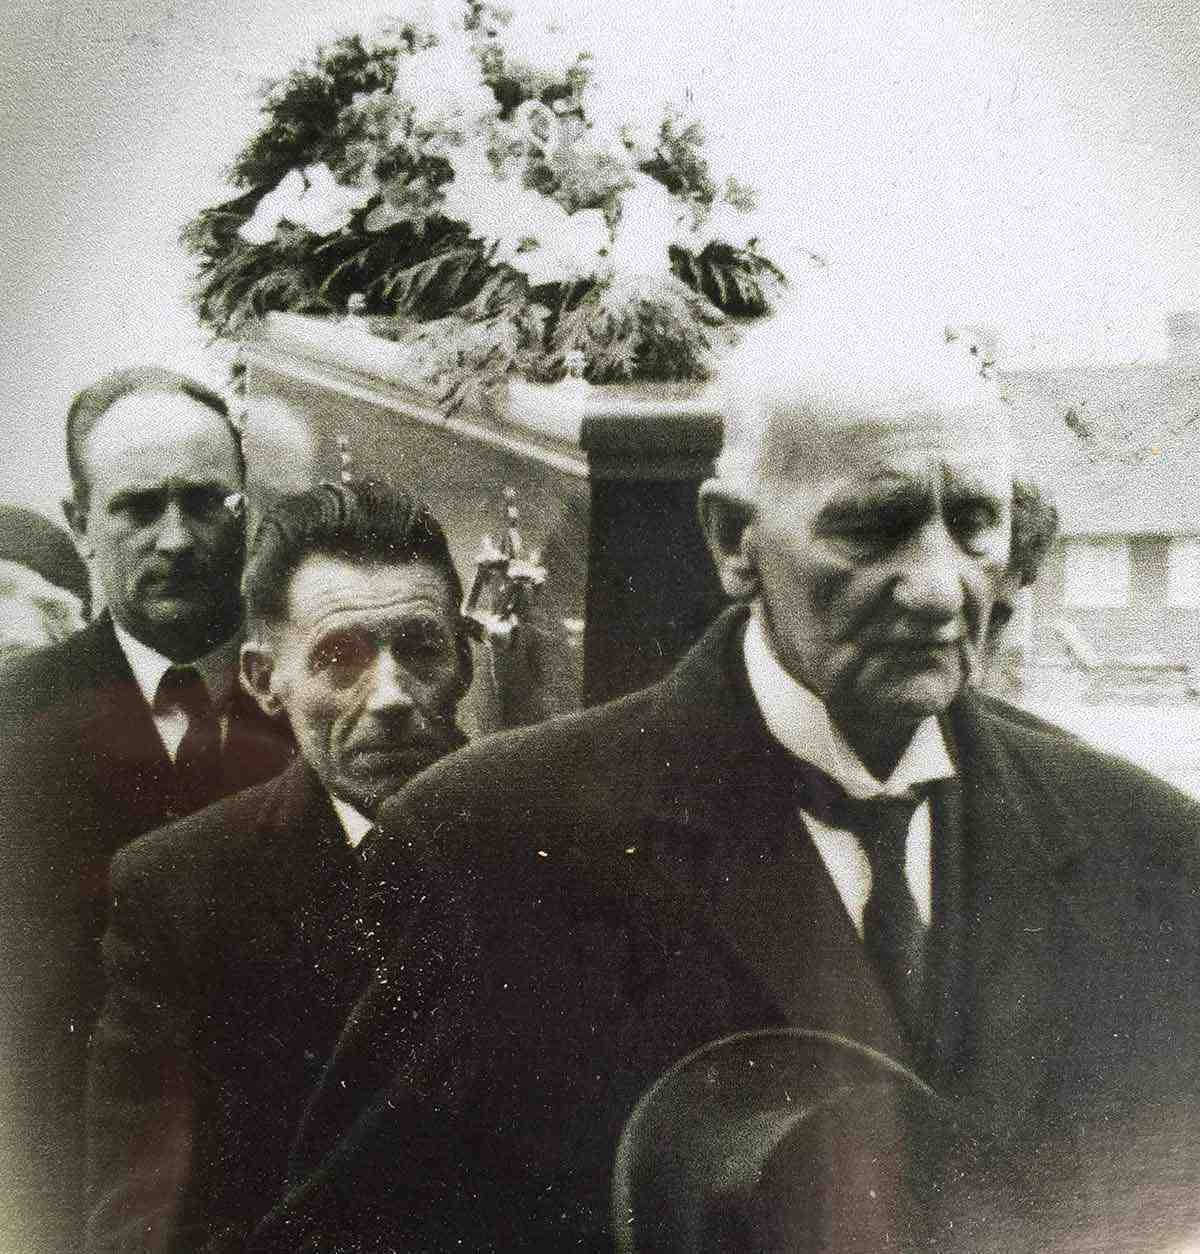 A photograph of three men carrying a coffin